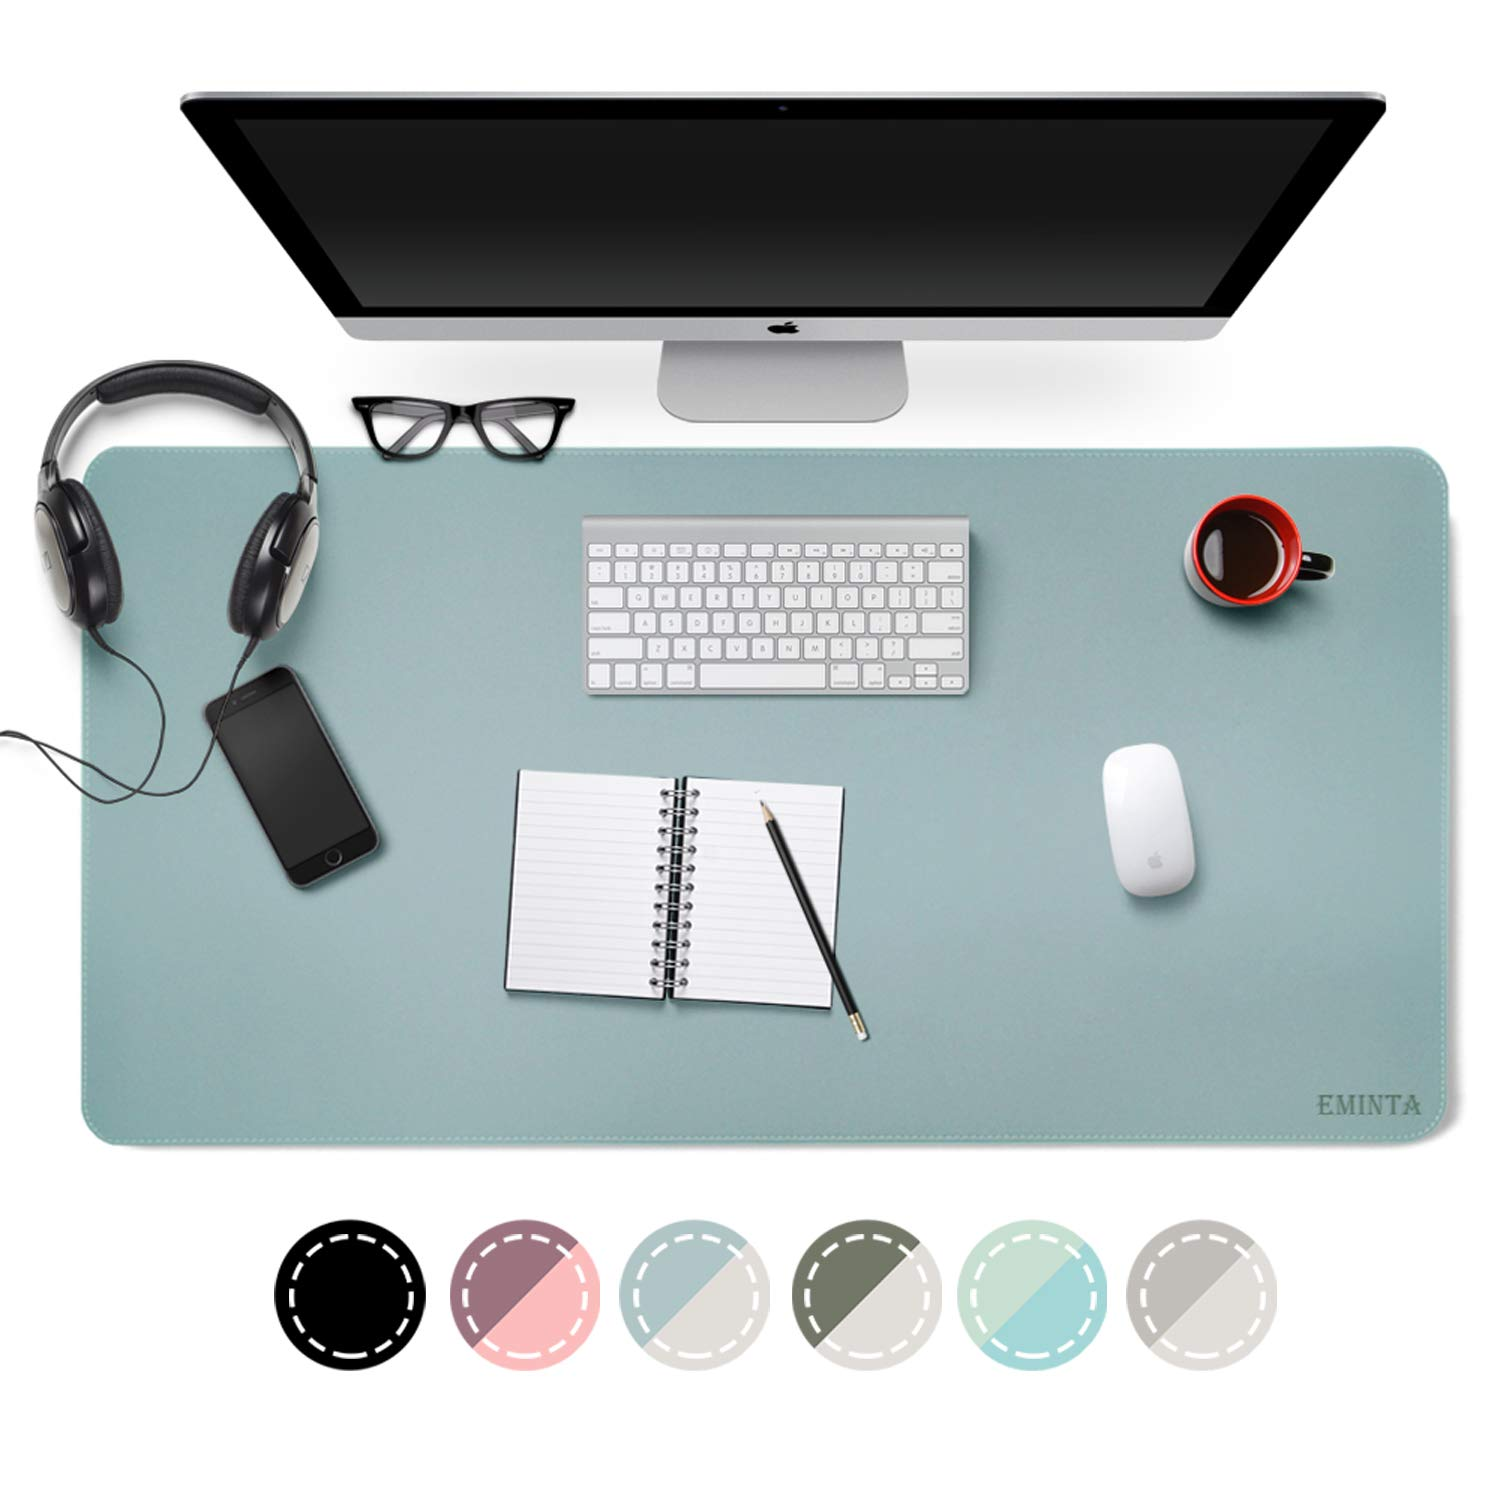 Dual-Sided Desk Pad Office Desk Mat, EMINTA Ultra Thin Waterproof PU Leather Mouse Pad Desk Blotter Protector, Desk Writing Mat for Office/Home (Light Blue/Silver, 31.5'' x 15.7'') by EMINTA